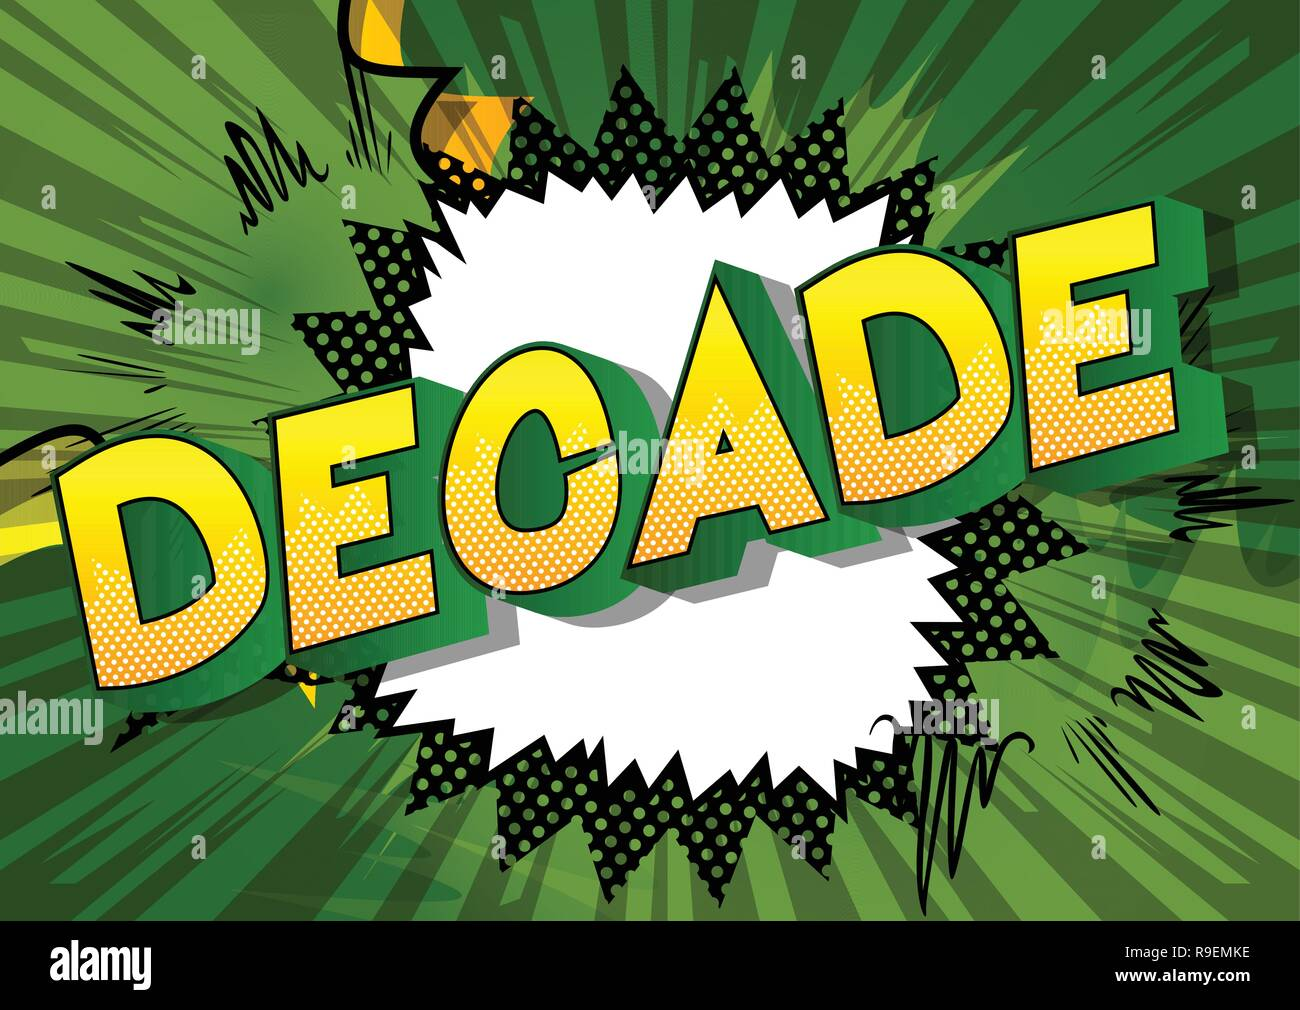 Decade - Vector illustrated comic book style phrase on abstract background. - Stock Image